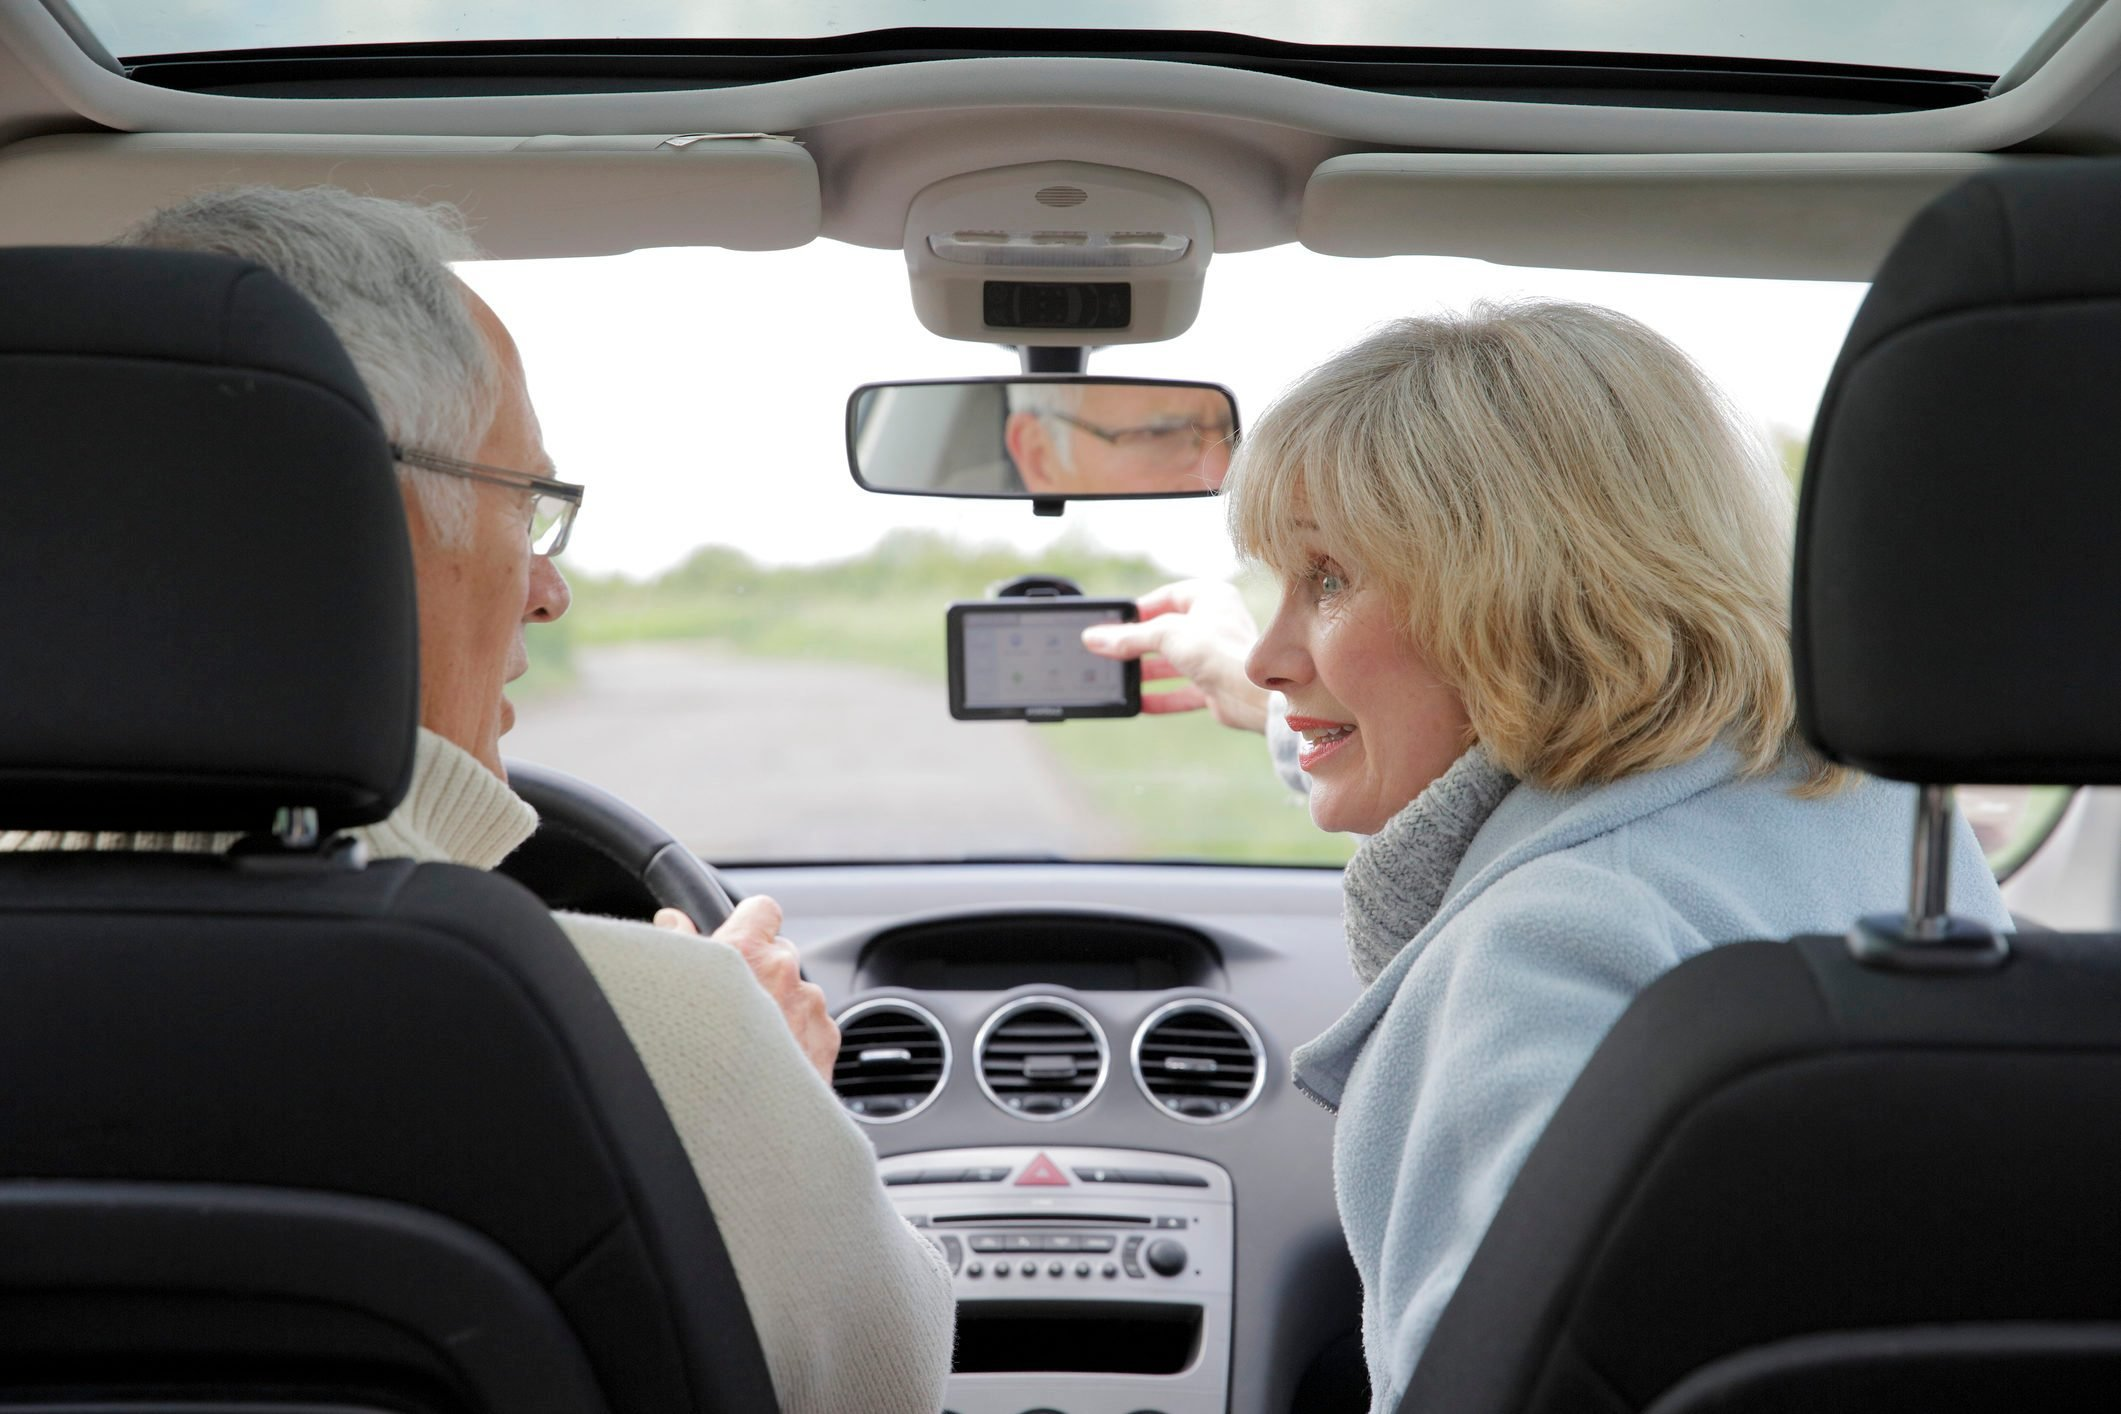 Mature couple using in a car using sat nav